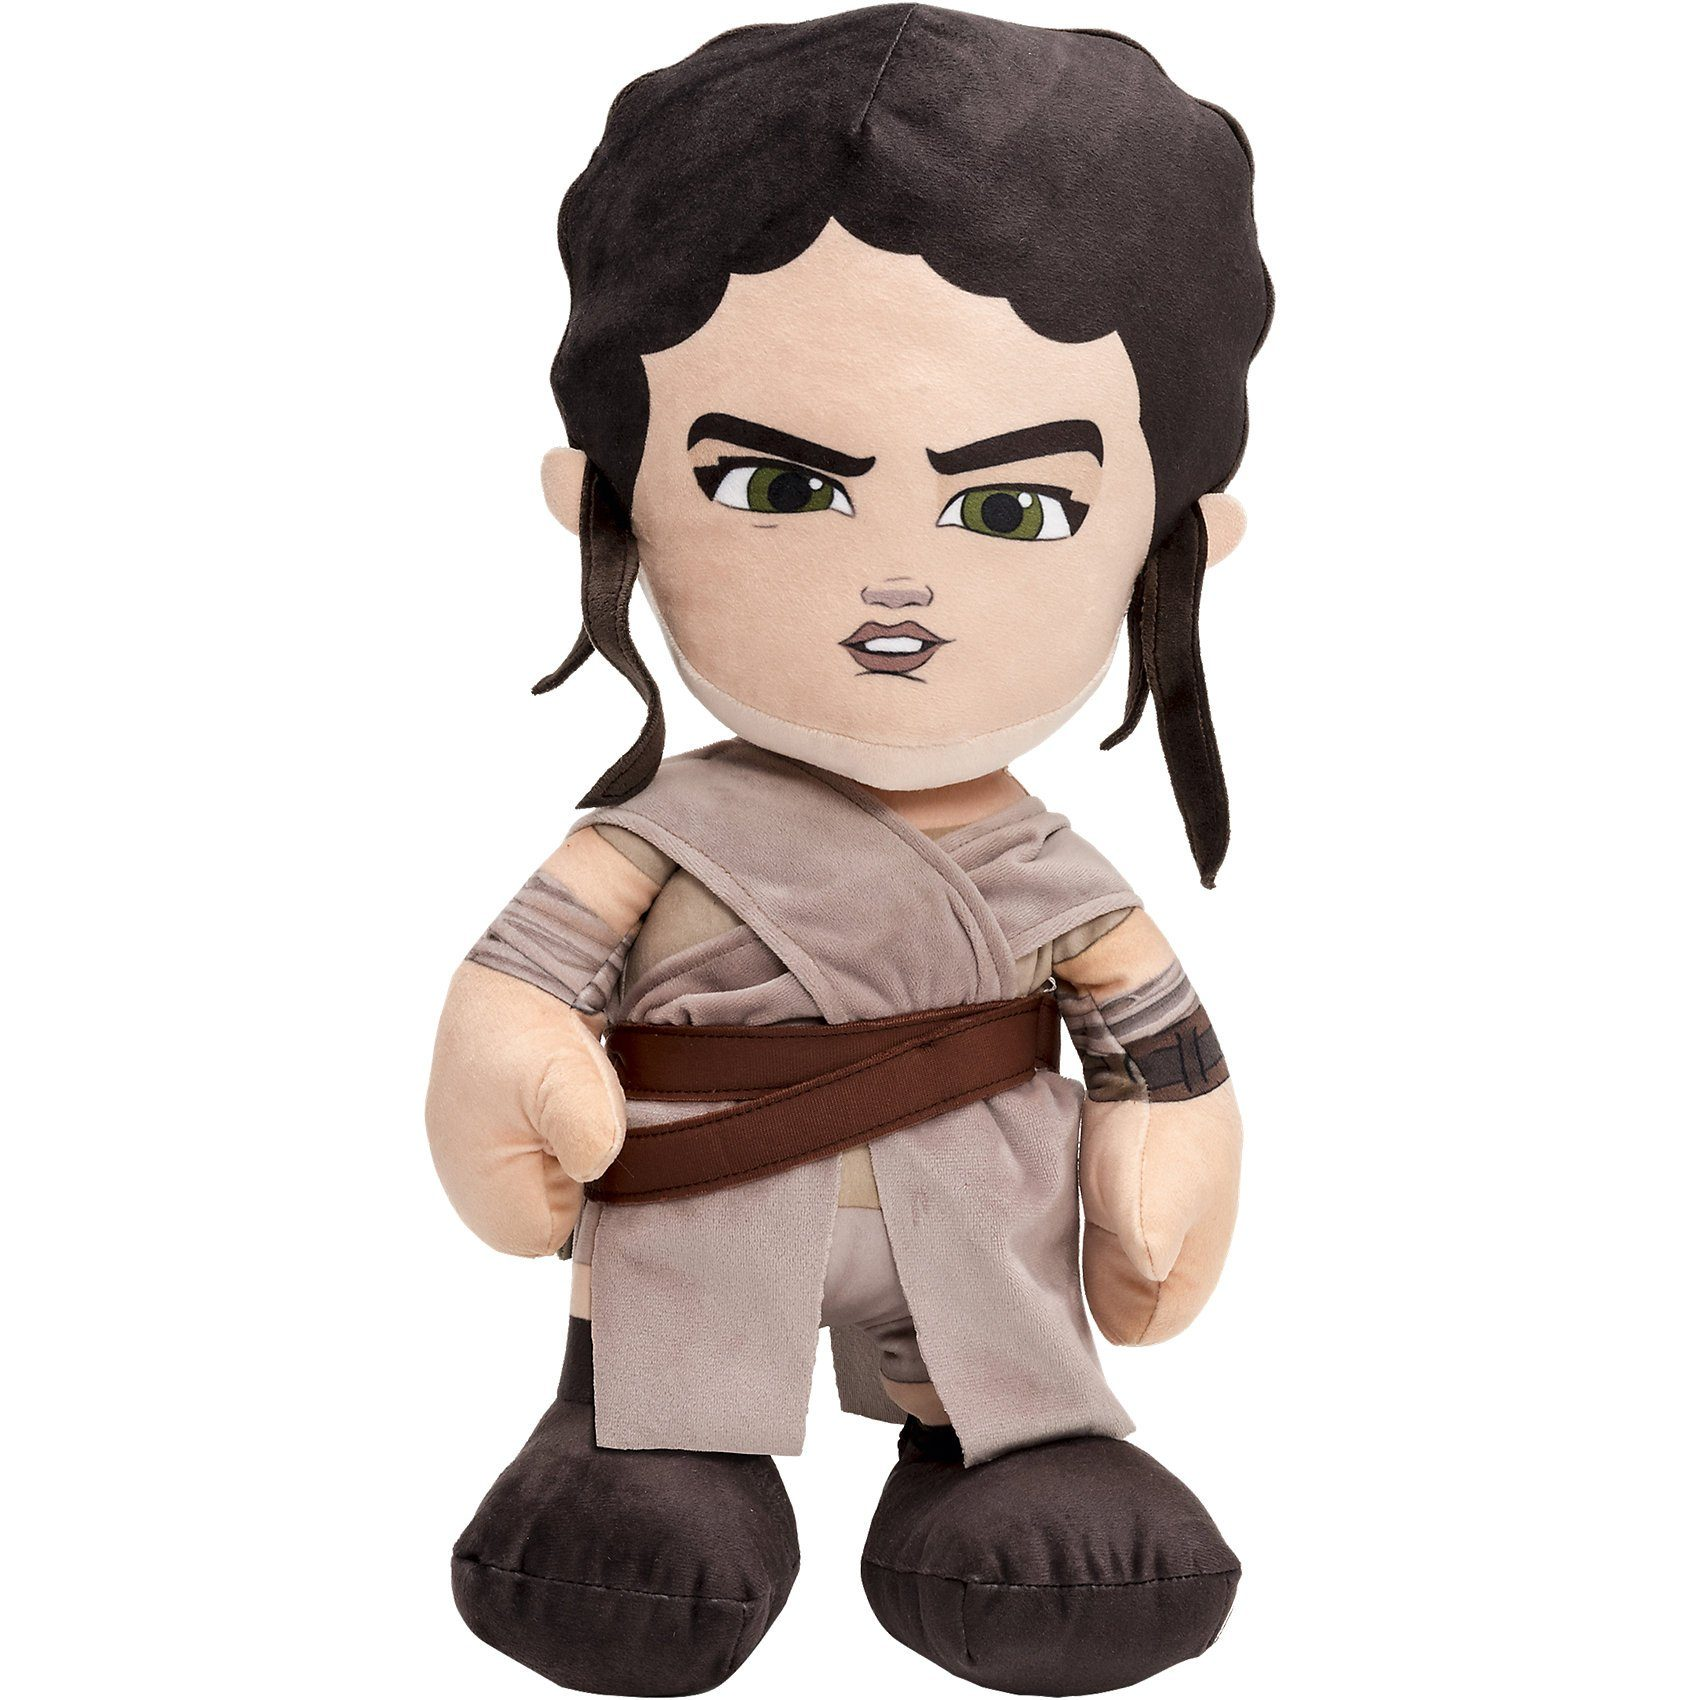 JOY TOY Plüsch Star Wars Rey, 45 cm